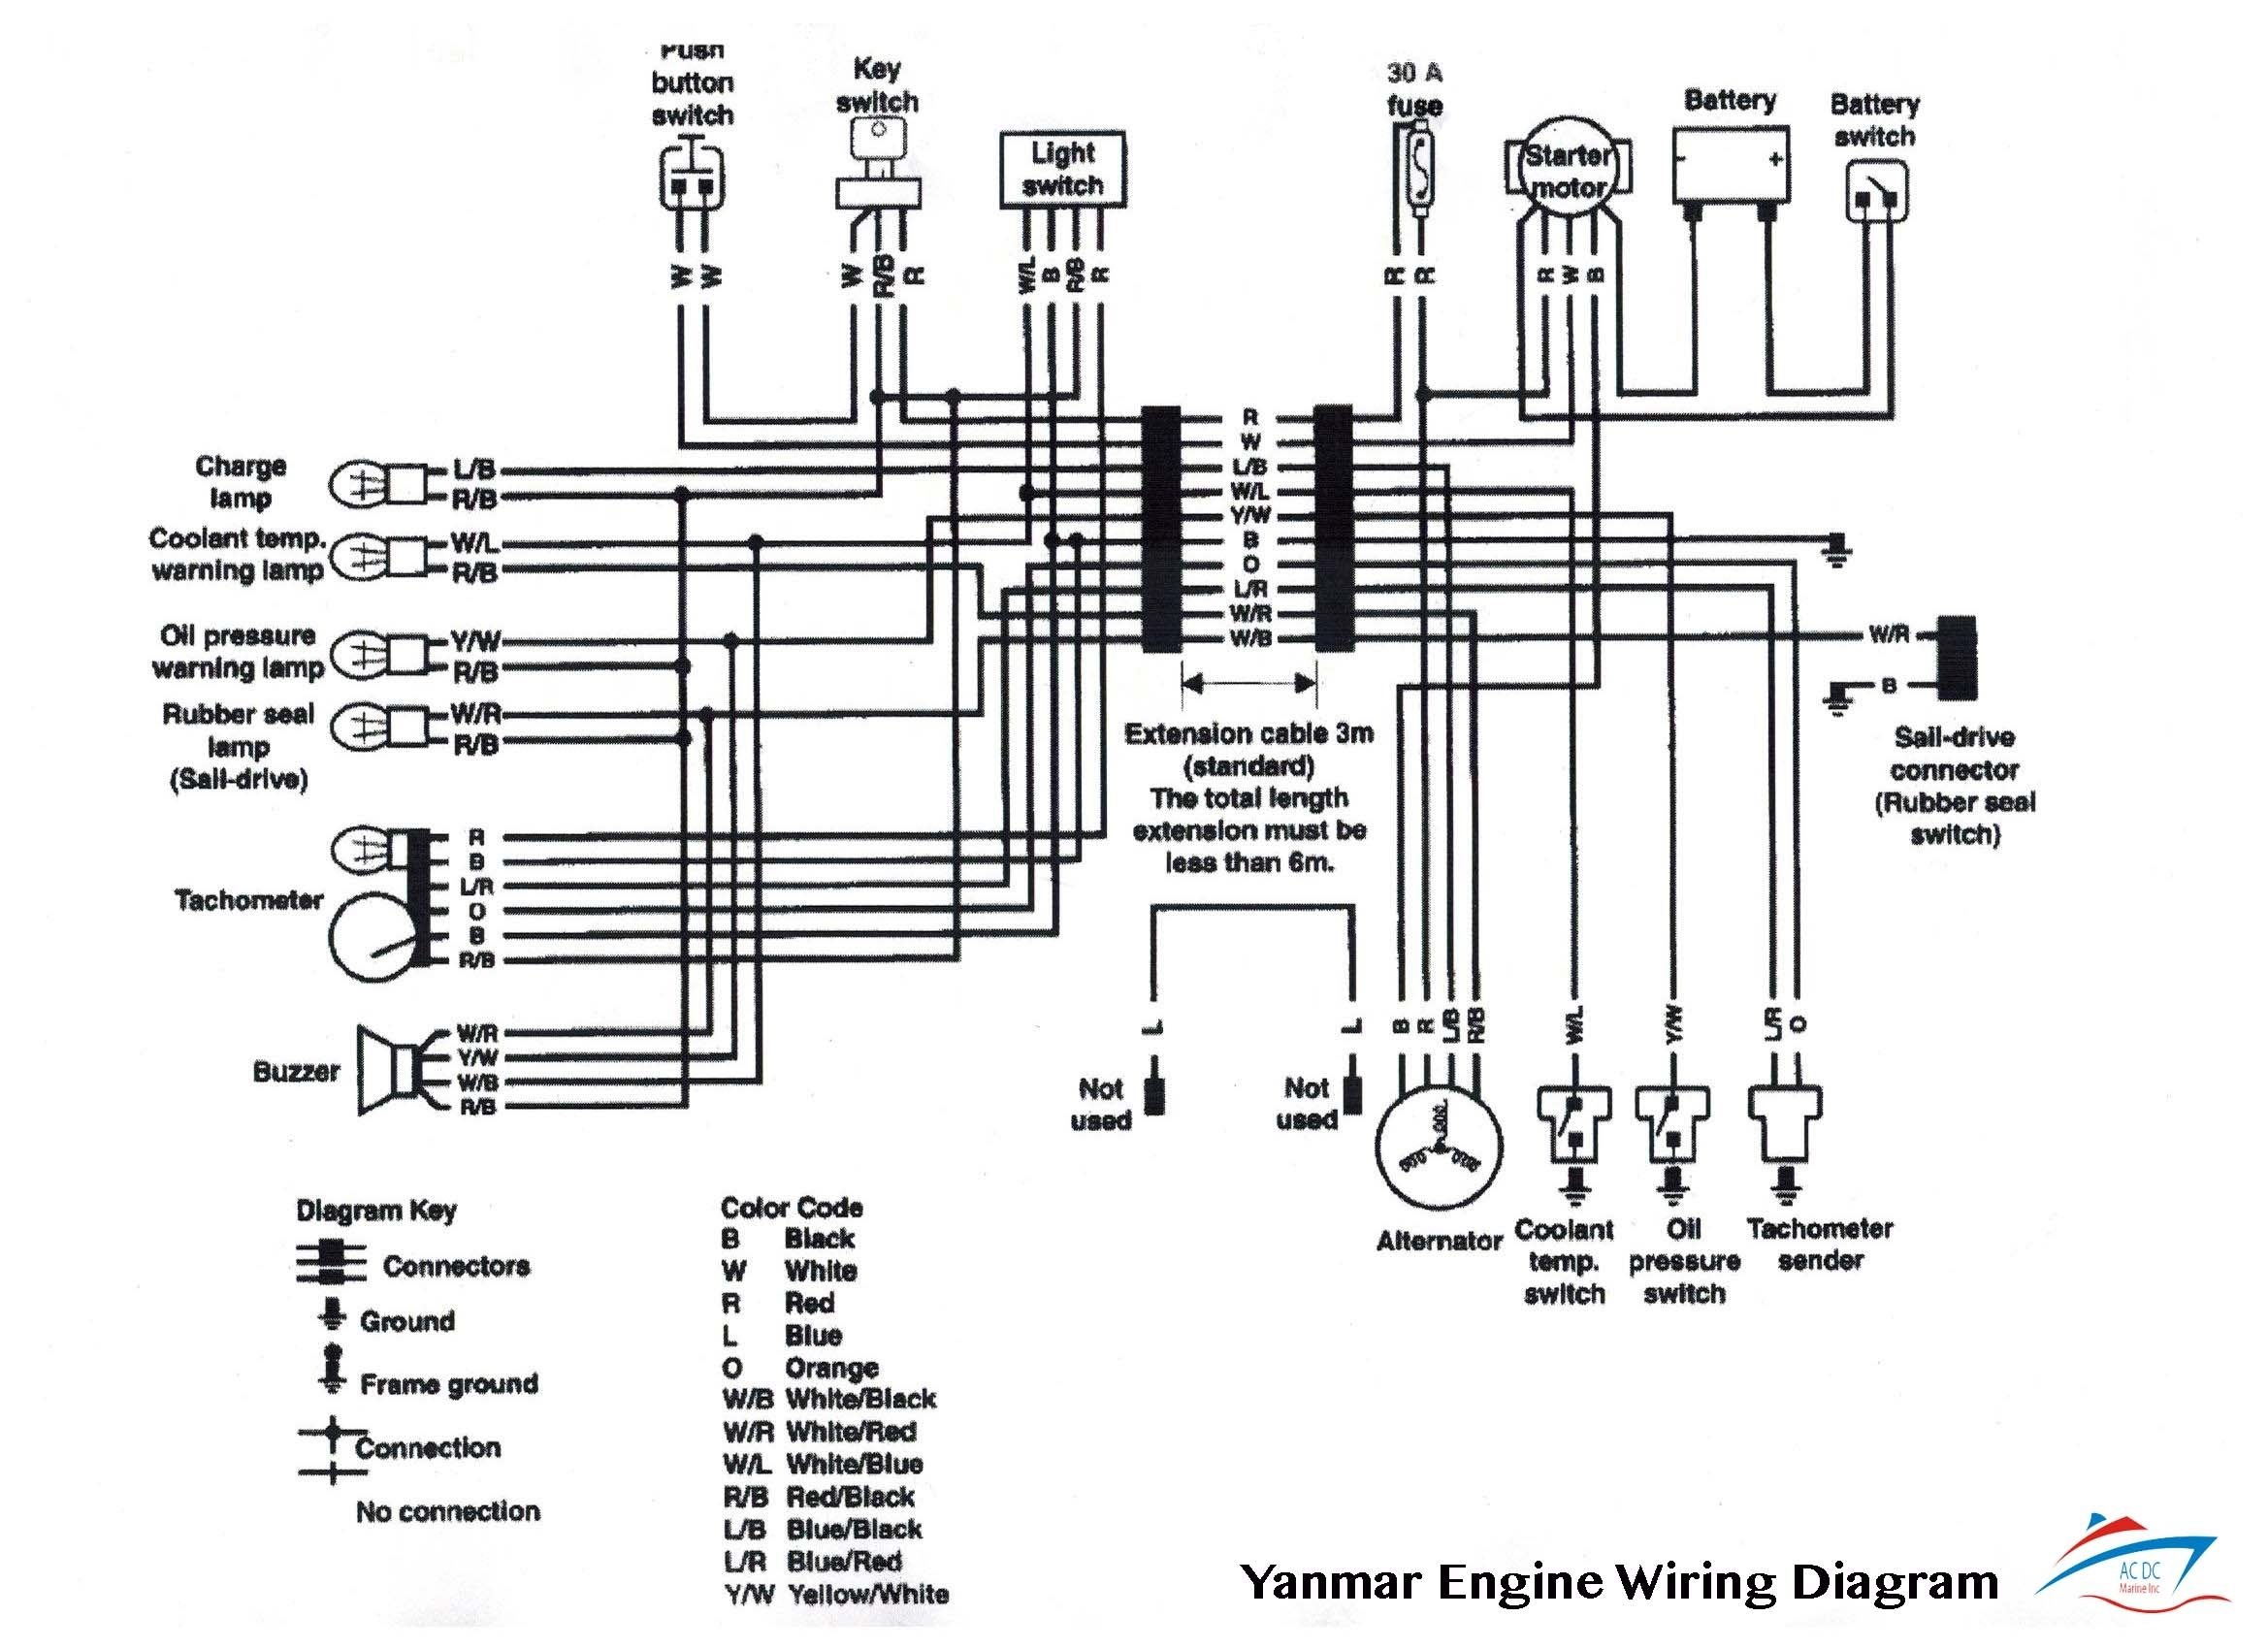 Atomic Four Tachometer Wiring Diagram Trusted Schematics Harley Mini Tach Marine And Engine Type R